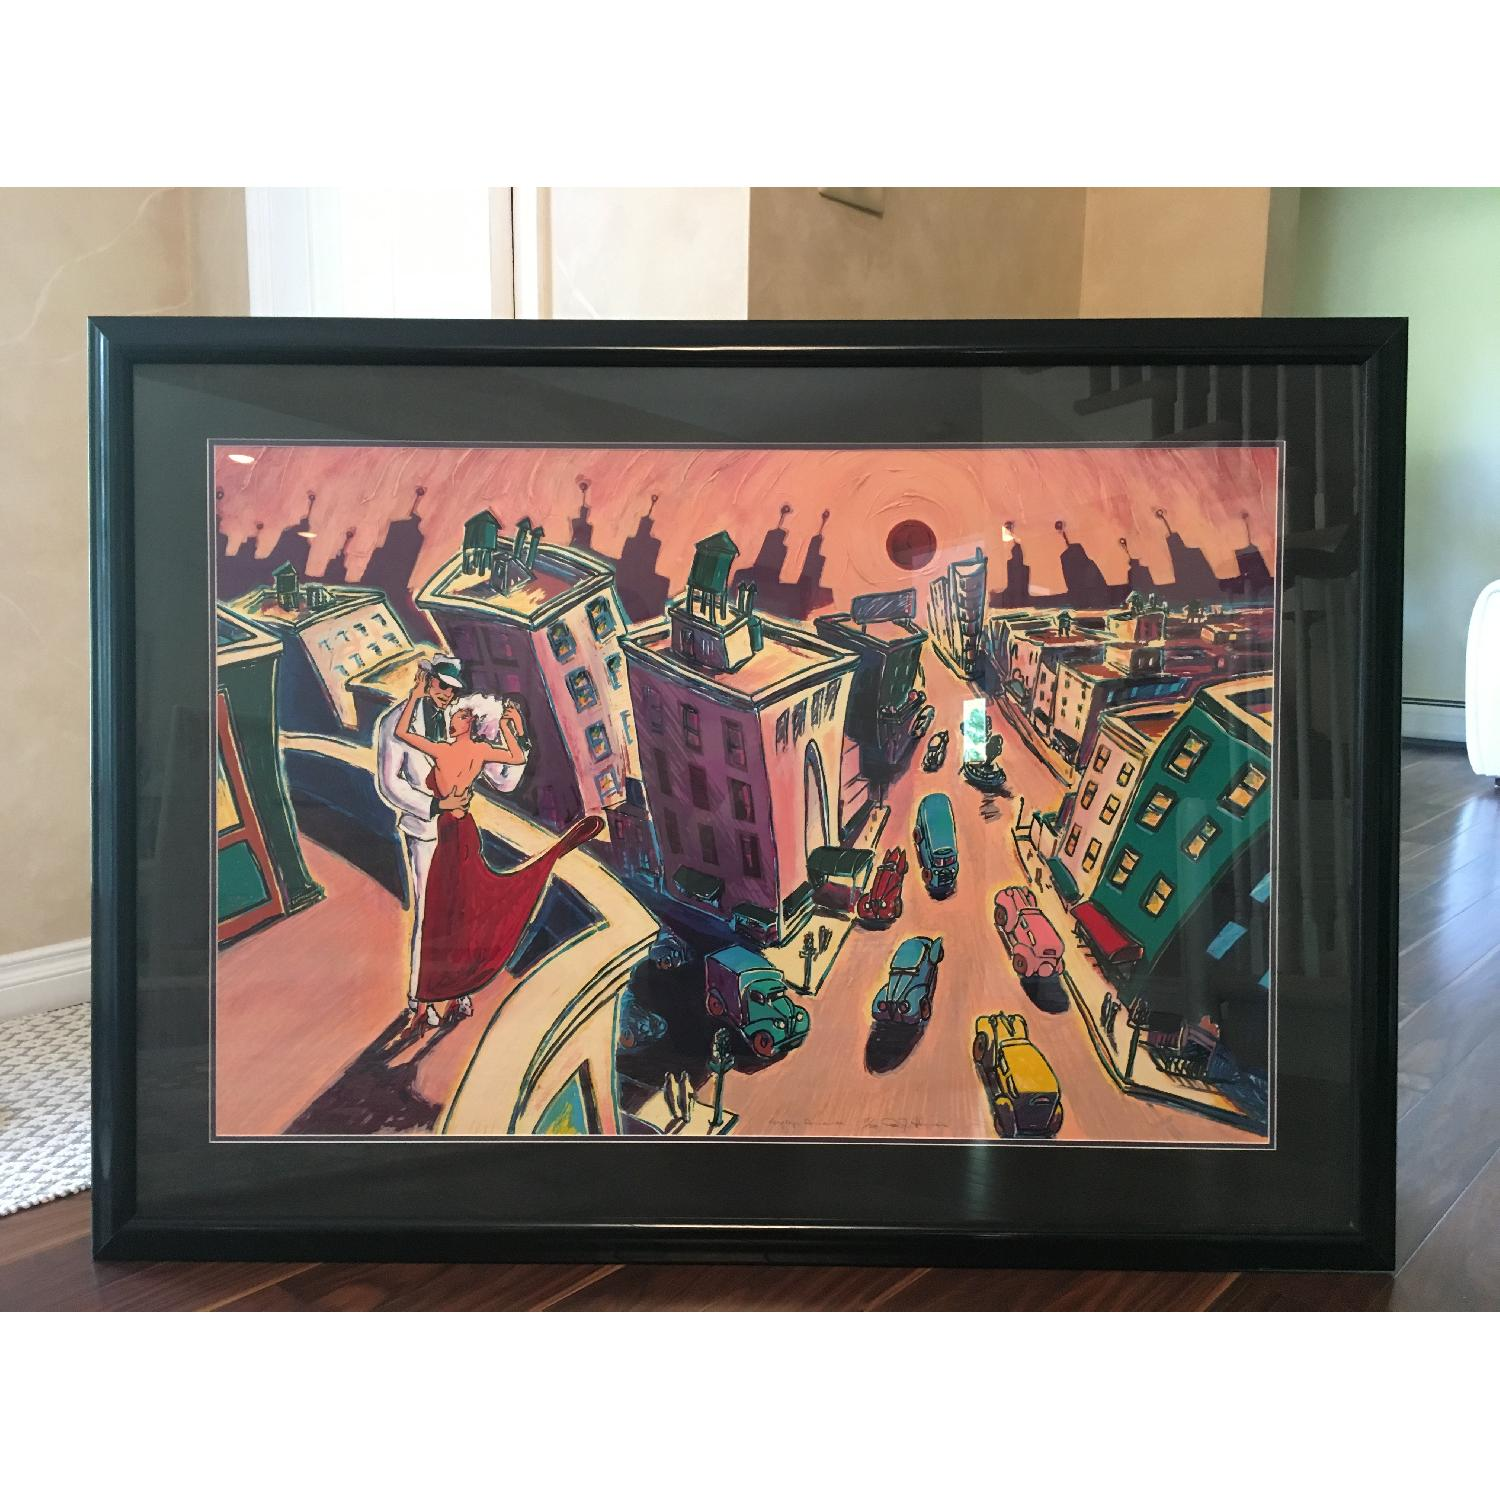 RJ Hohimer Rooftop Romance Signed Painting 135 of 300 - image-1